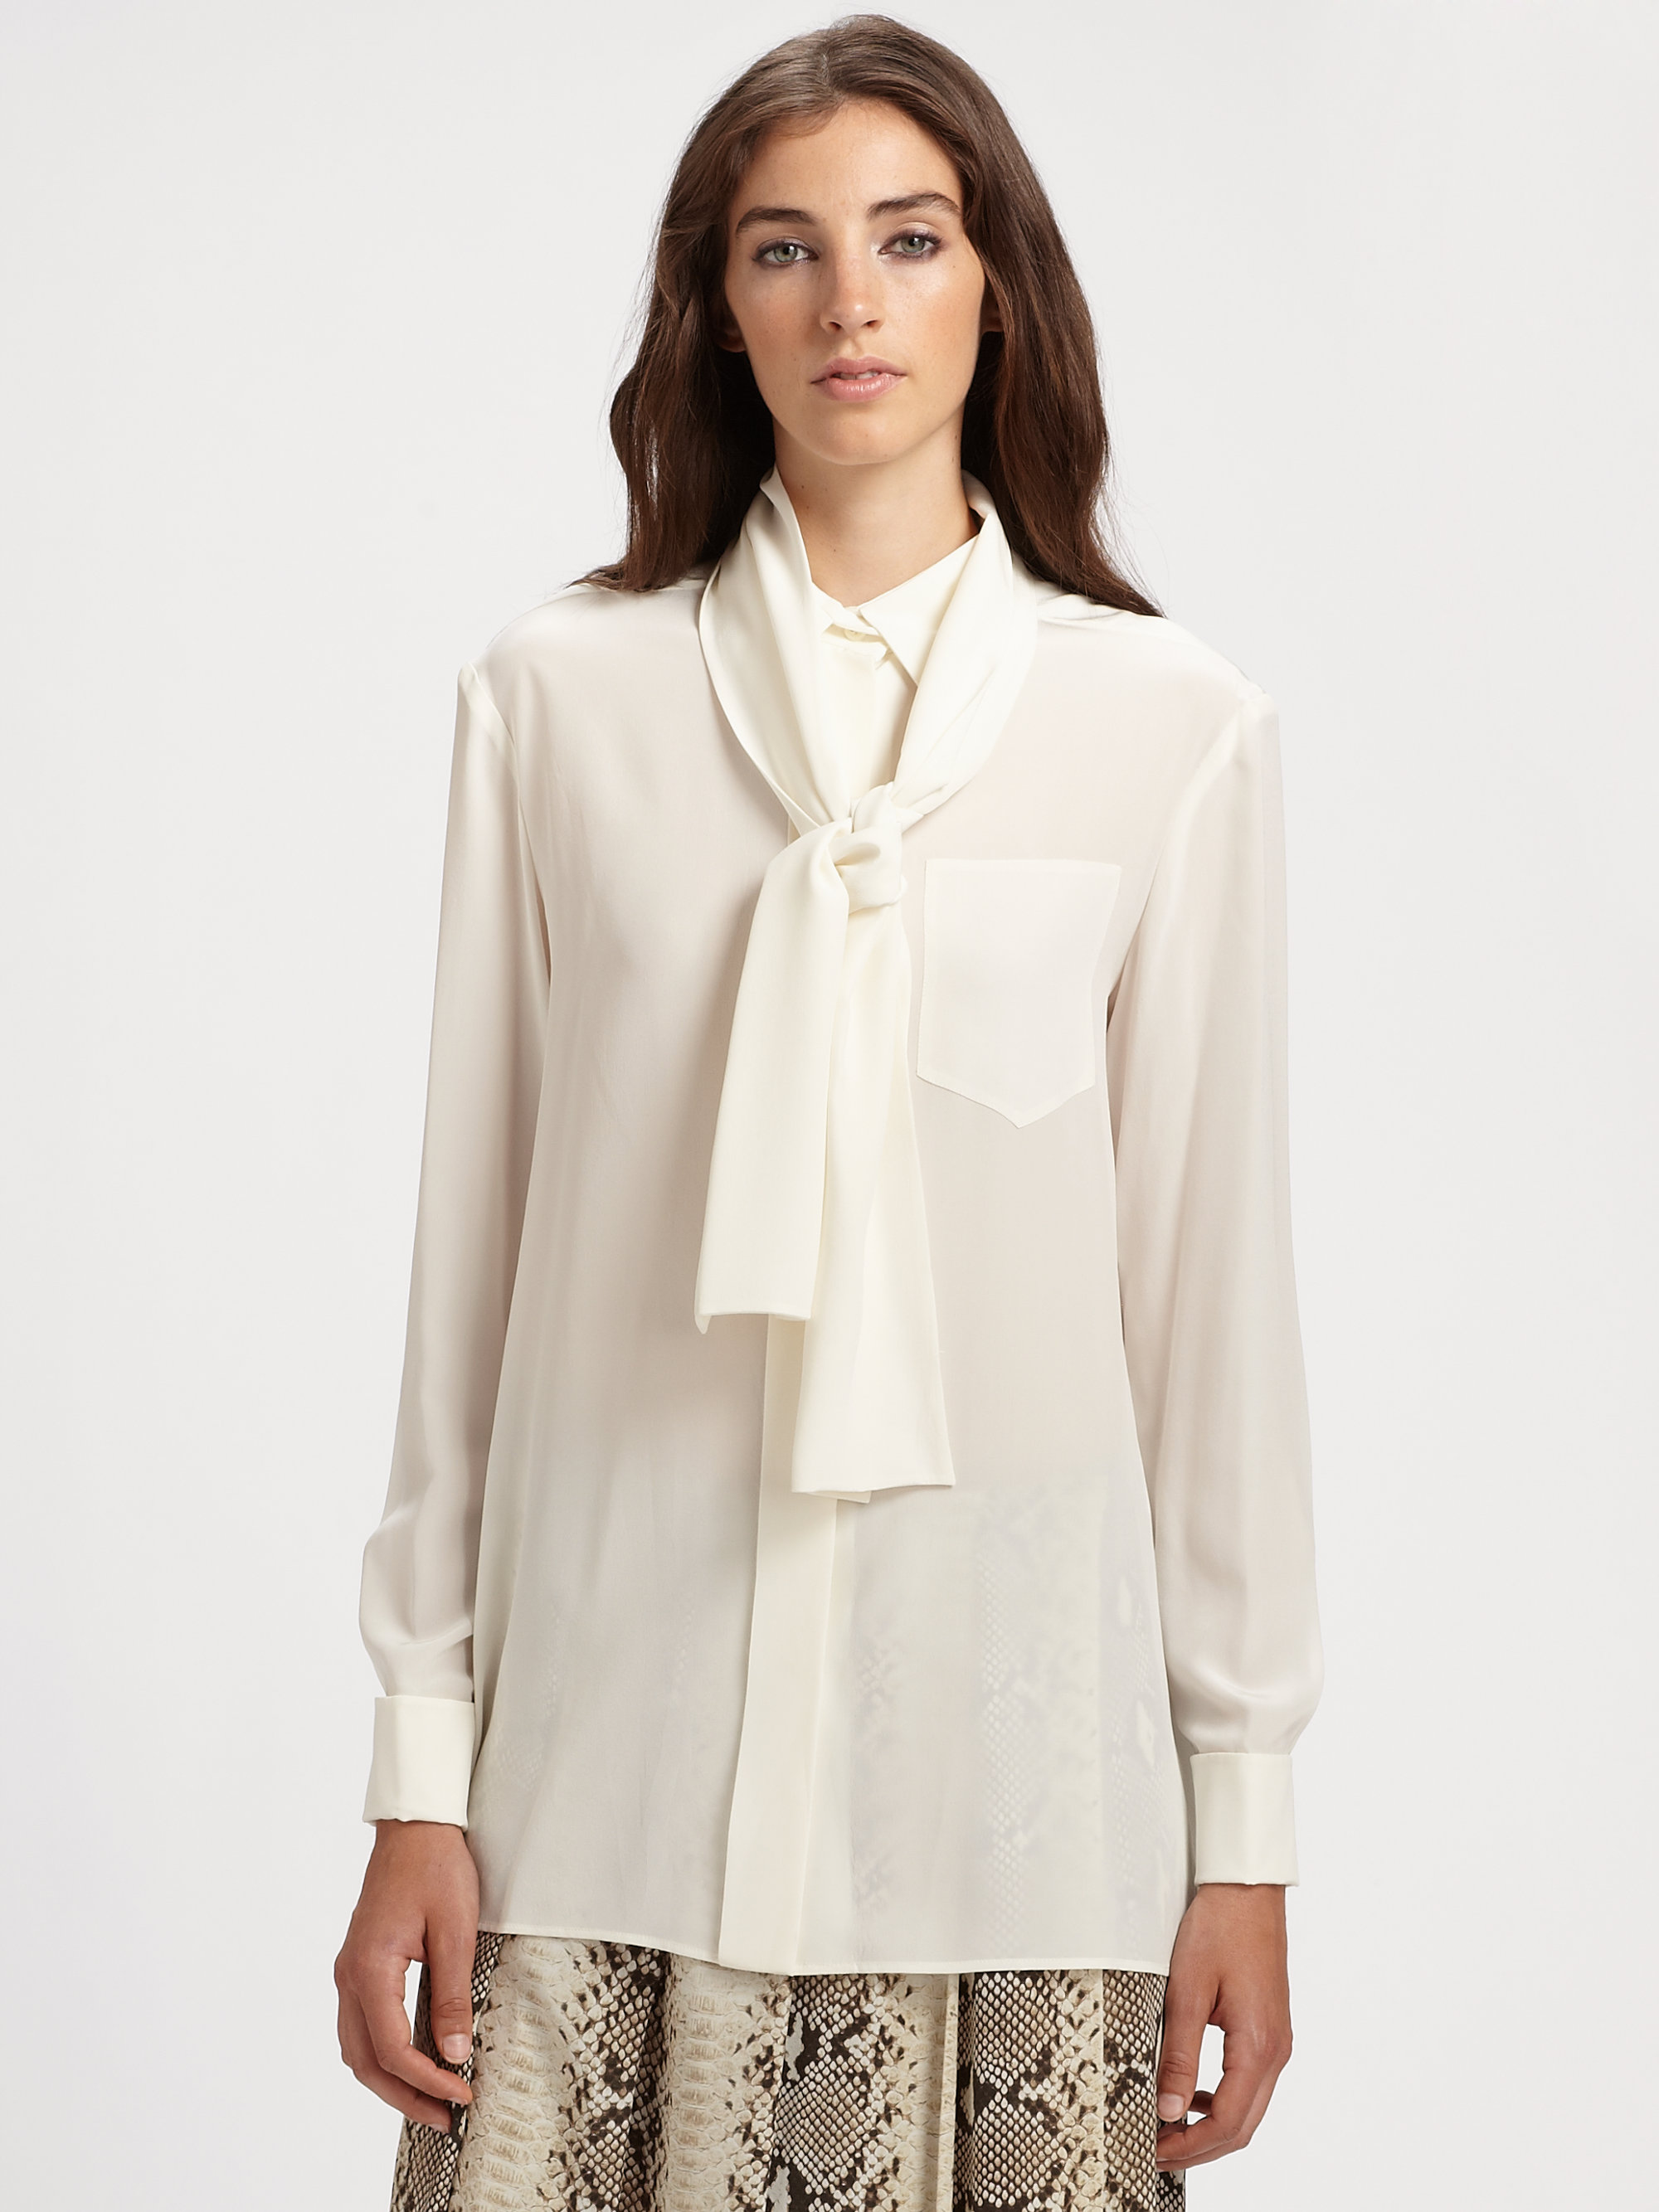 Chloé Silk Blouse in White | Lyst